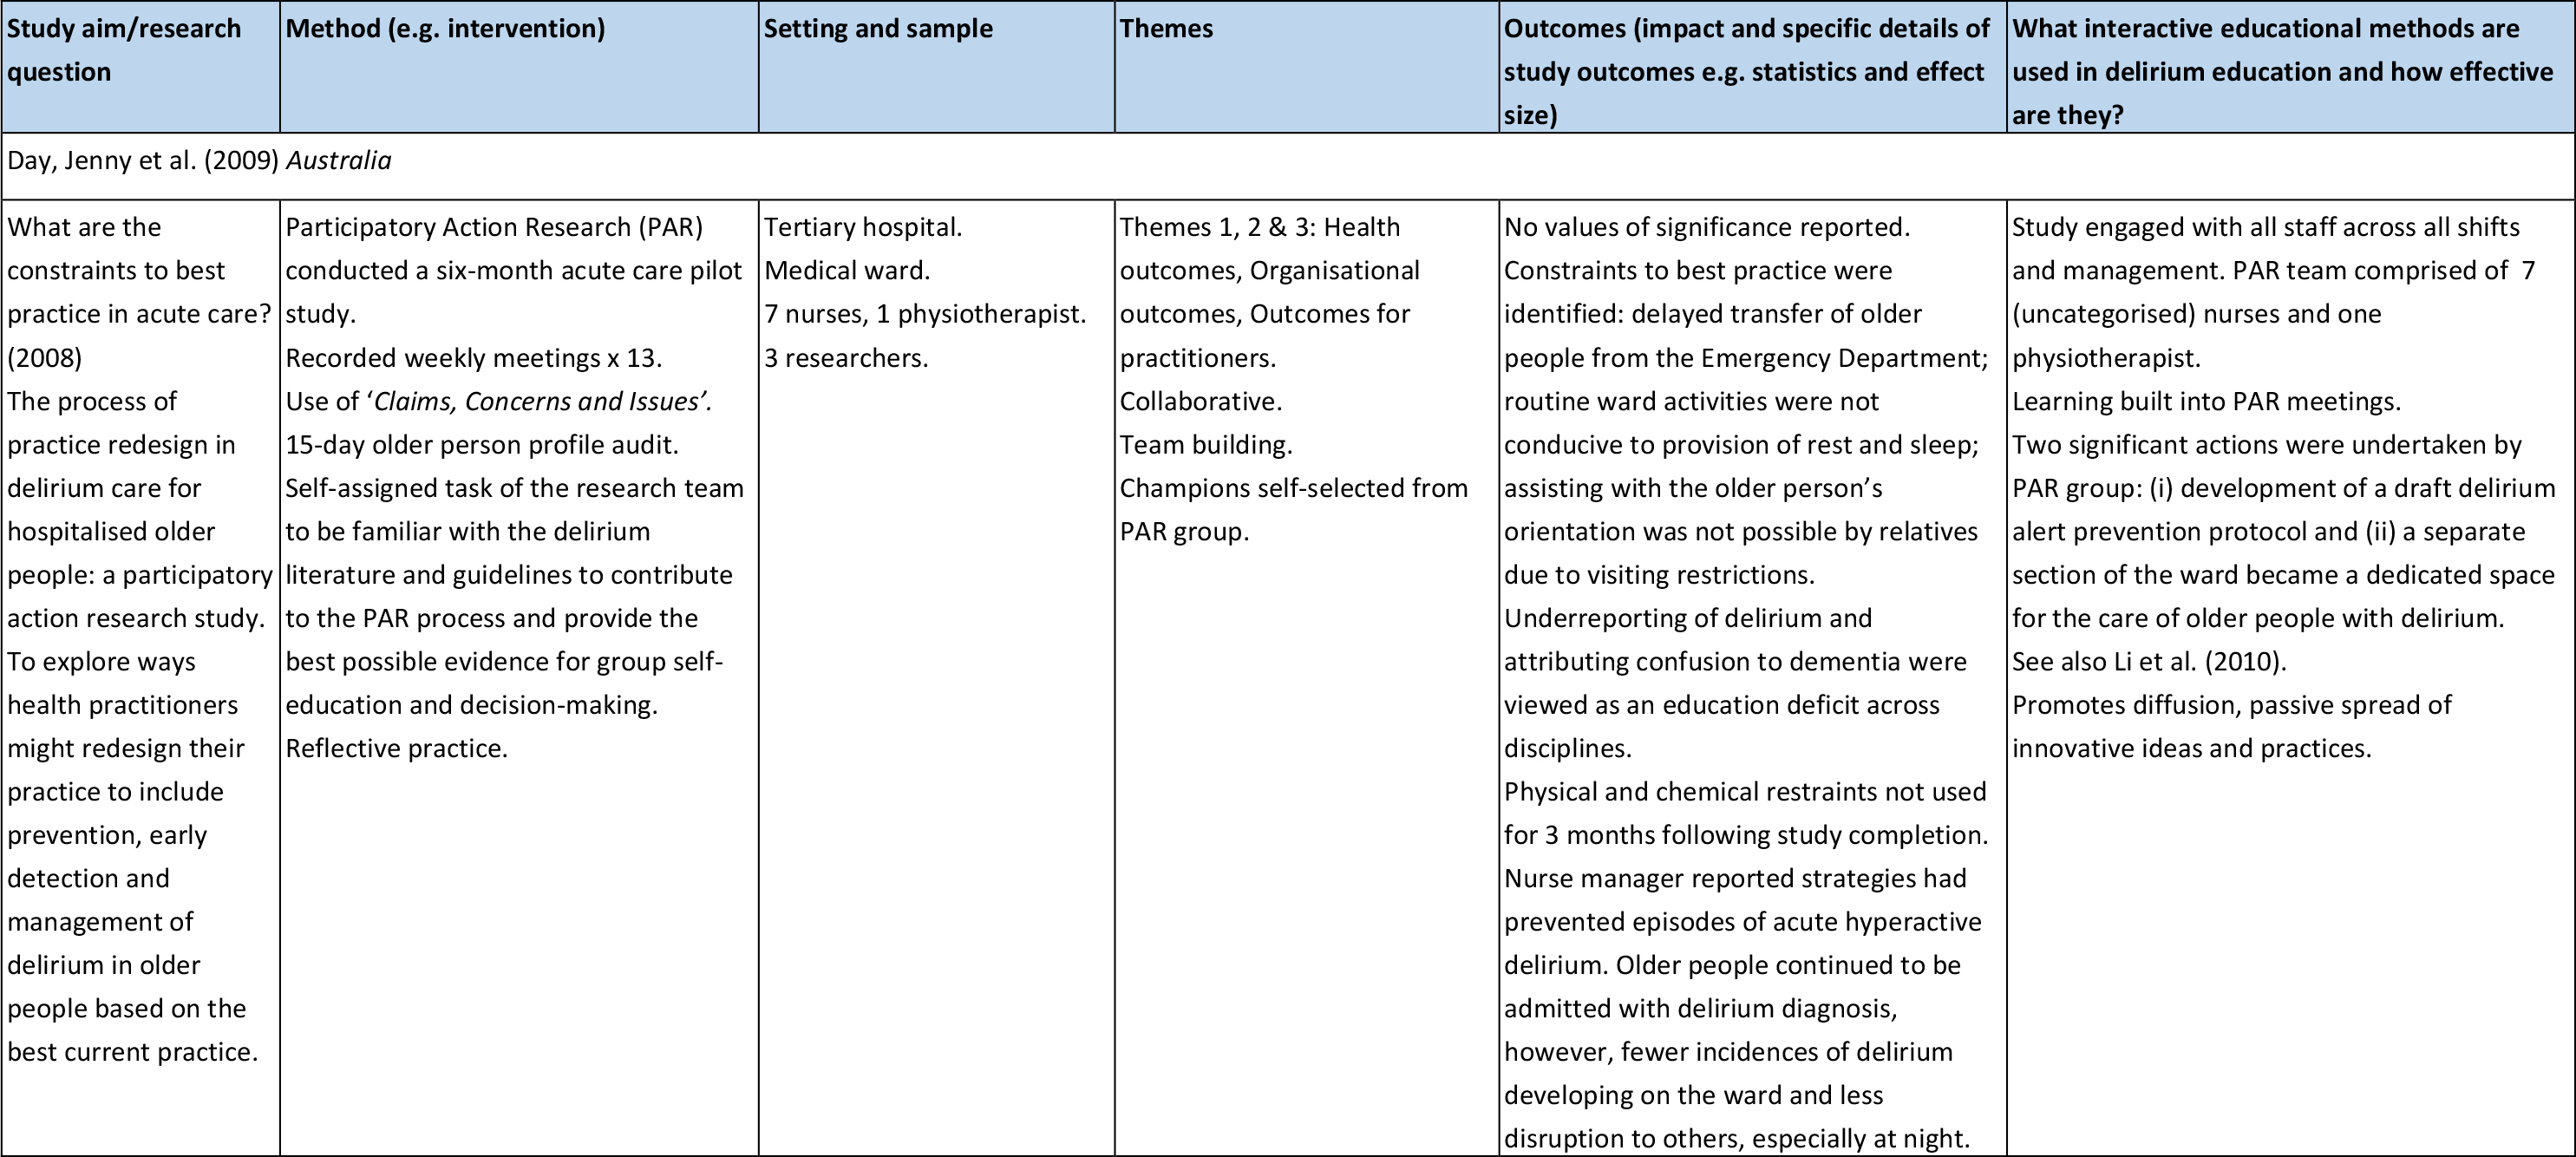 Summary of Literature Review Findings